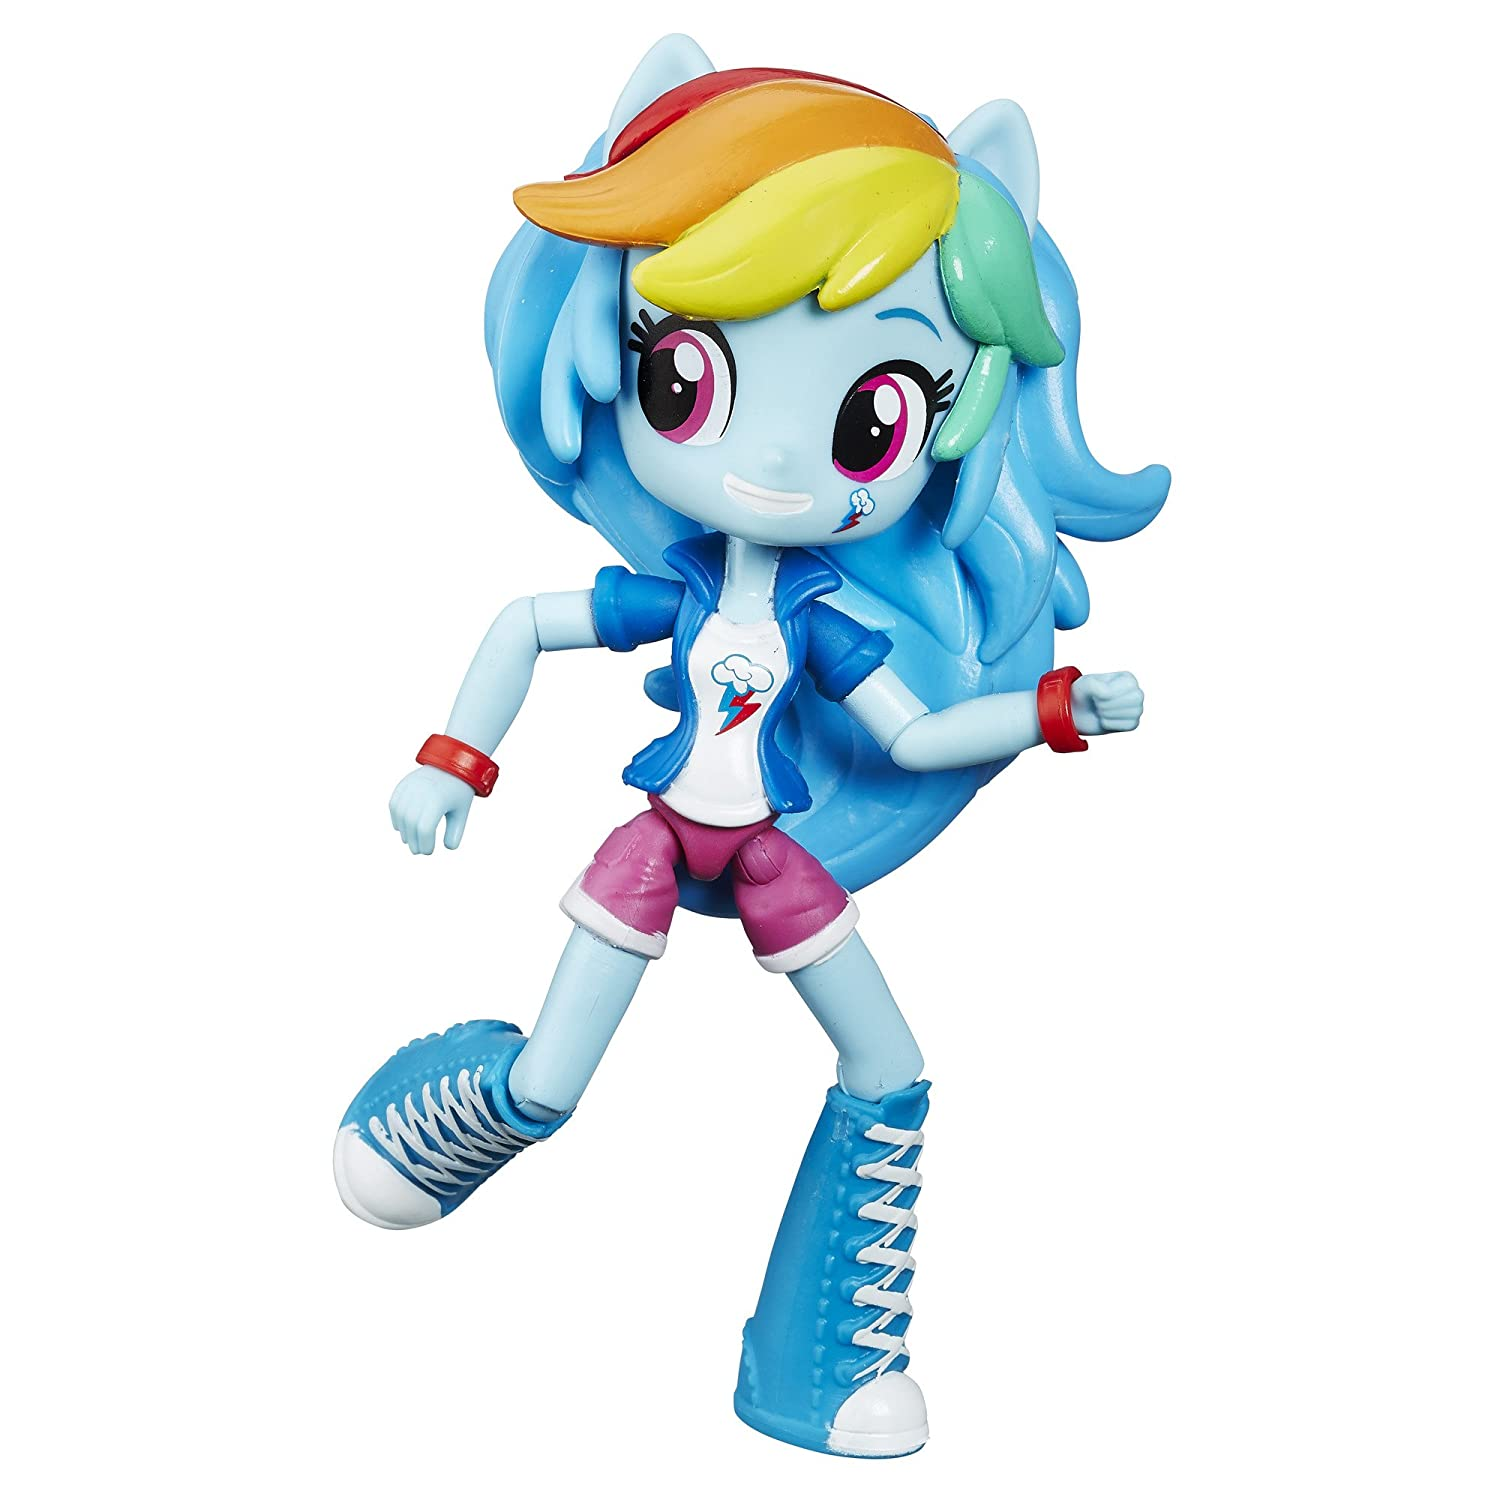 b9e3c0493f4 Buy My Little Pony Equestria Girls Minis Rainbow Dash Doll Online at Low  Prices in India - Amazon.in